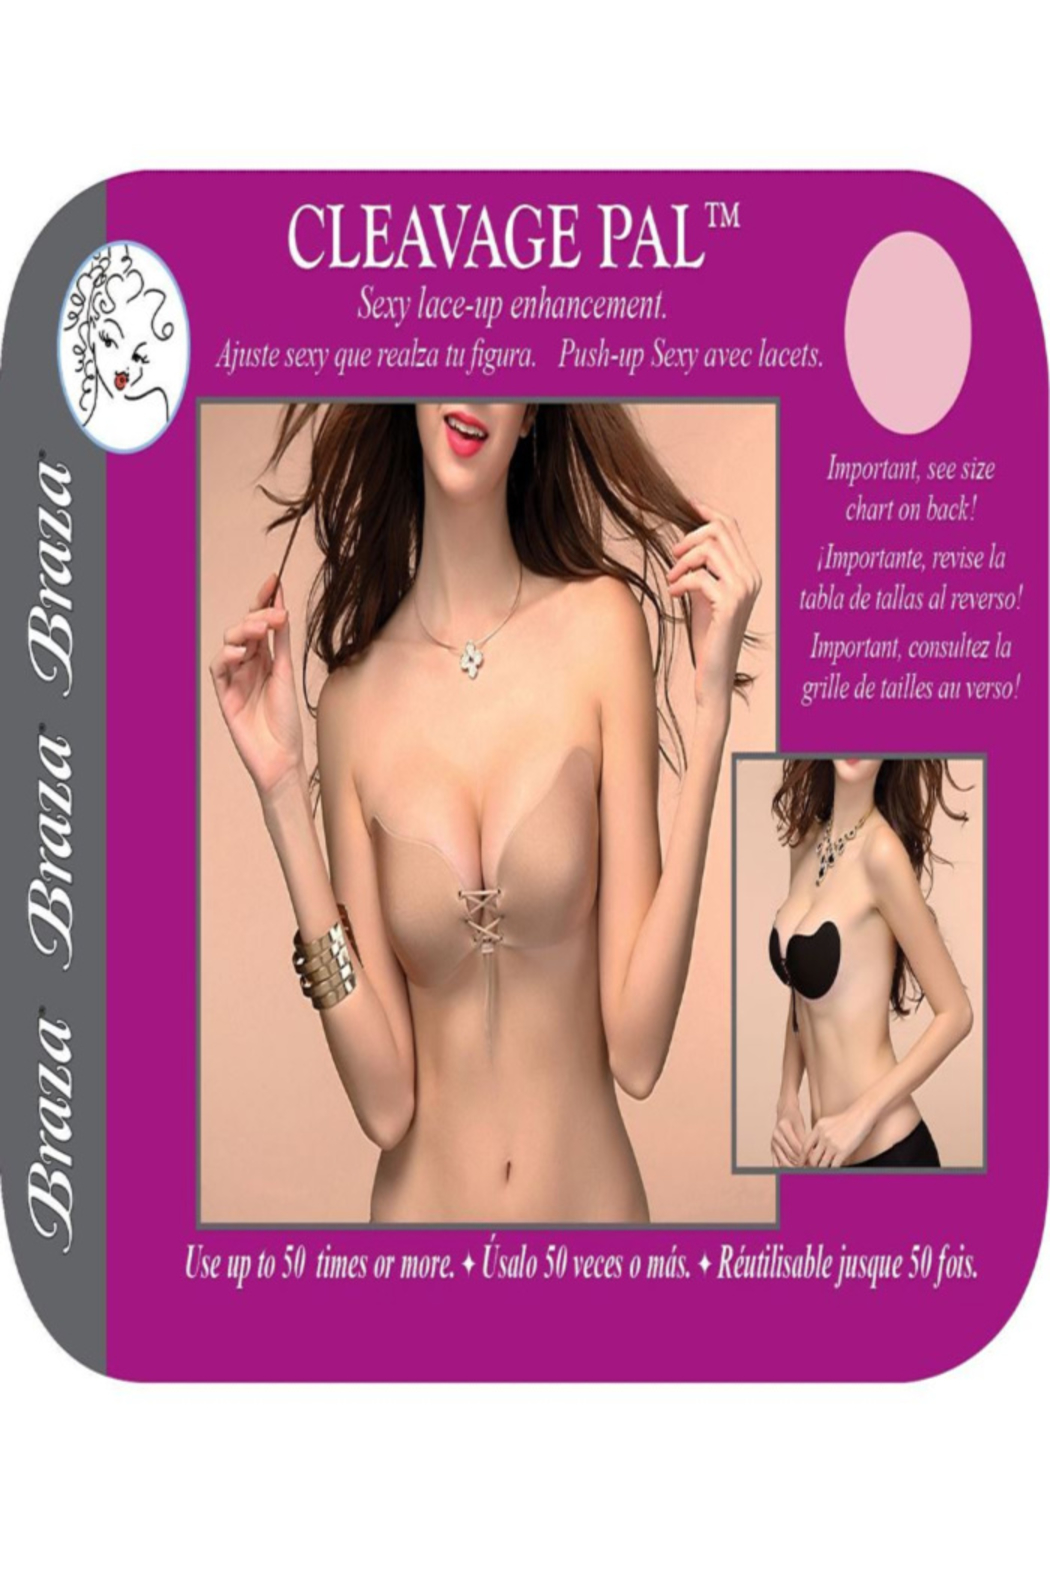 Braza Cleavage Pal from Indiana by Lyn-Maree s — Shoptiques 24493b813